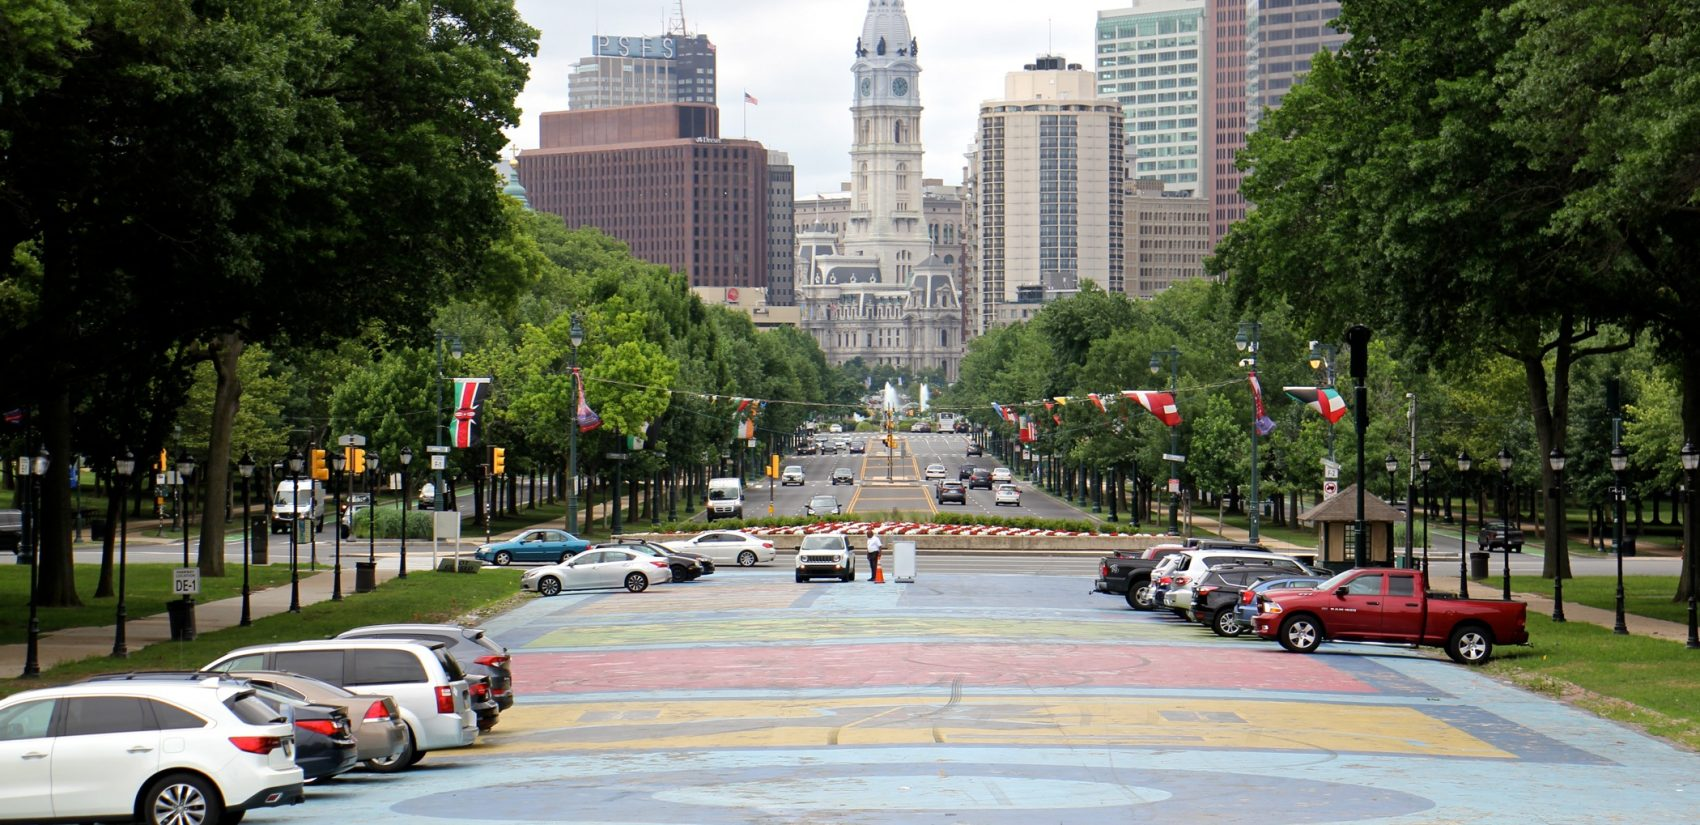 Looking east toward City Hall from Eakins Oval. (Emma Lee/WHYY)